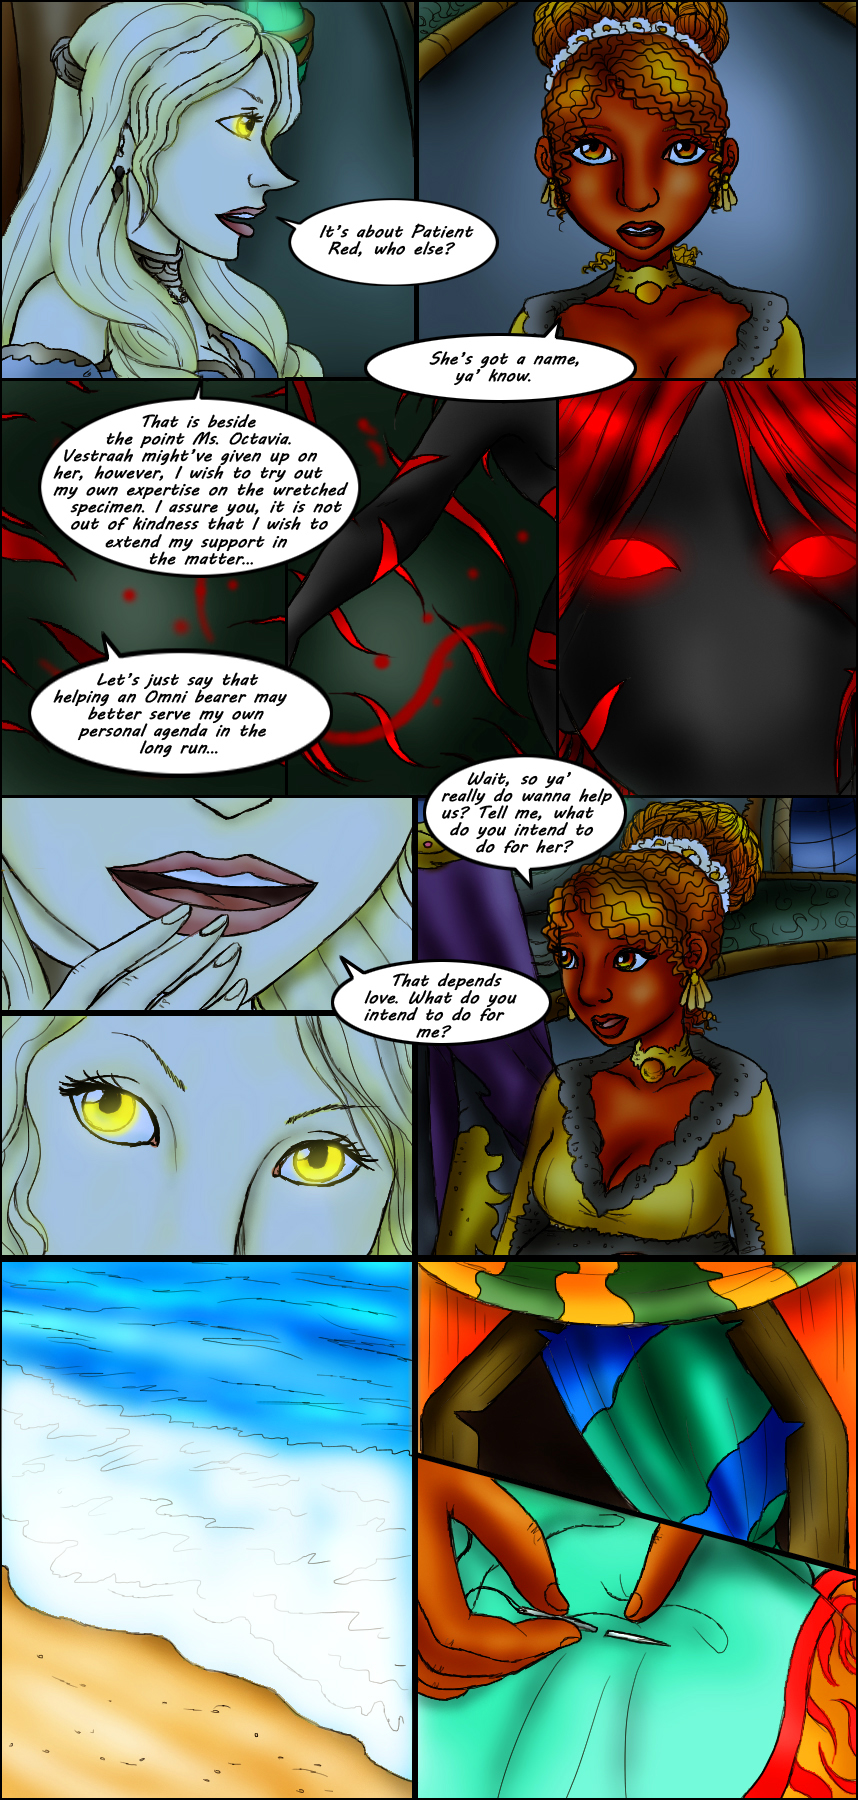 Page 198 – Out Of Kindness